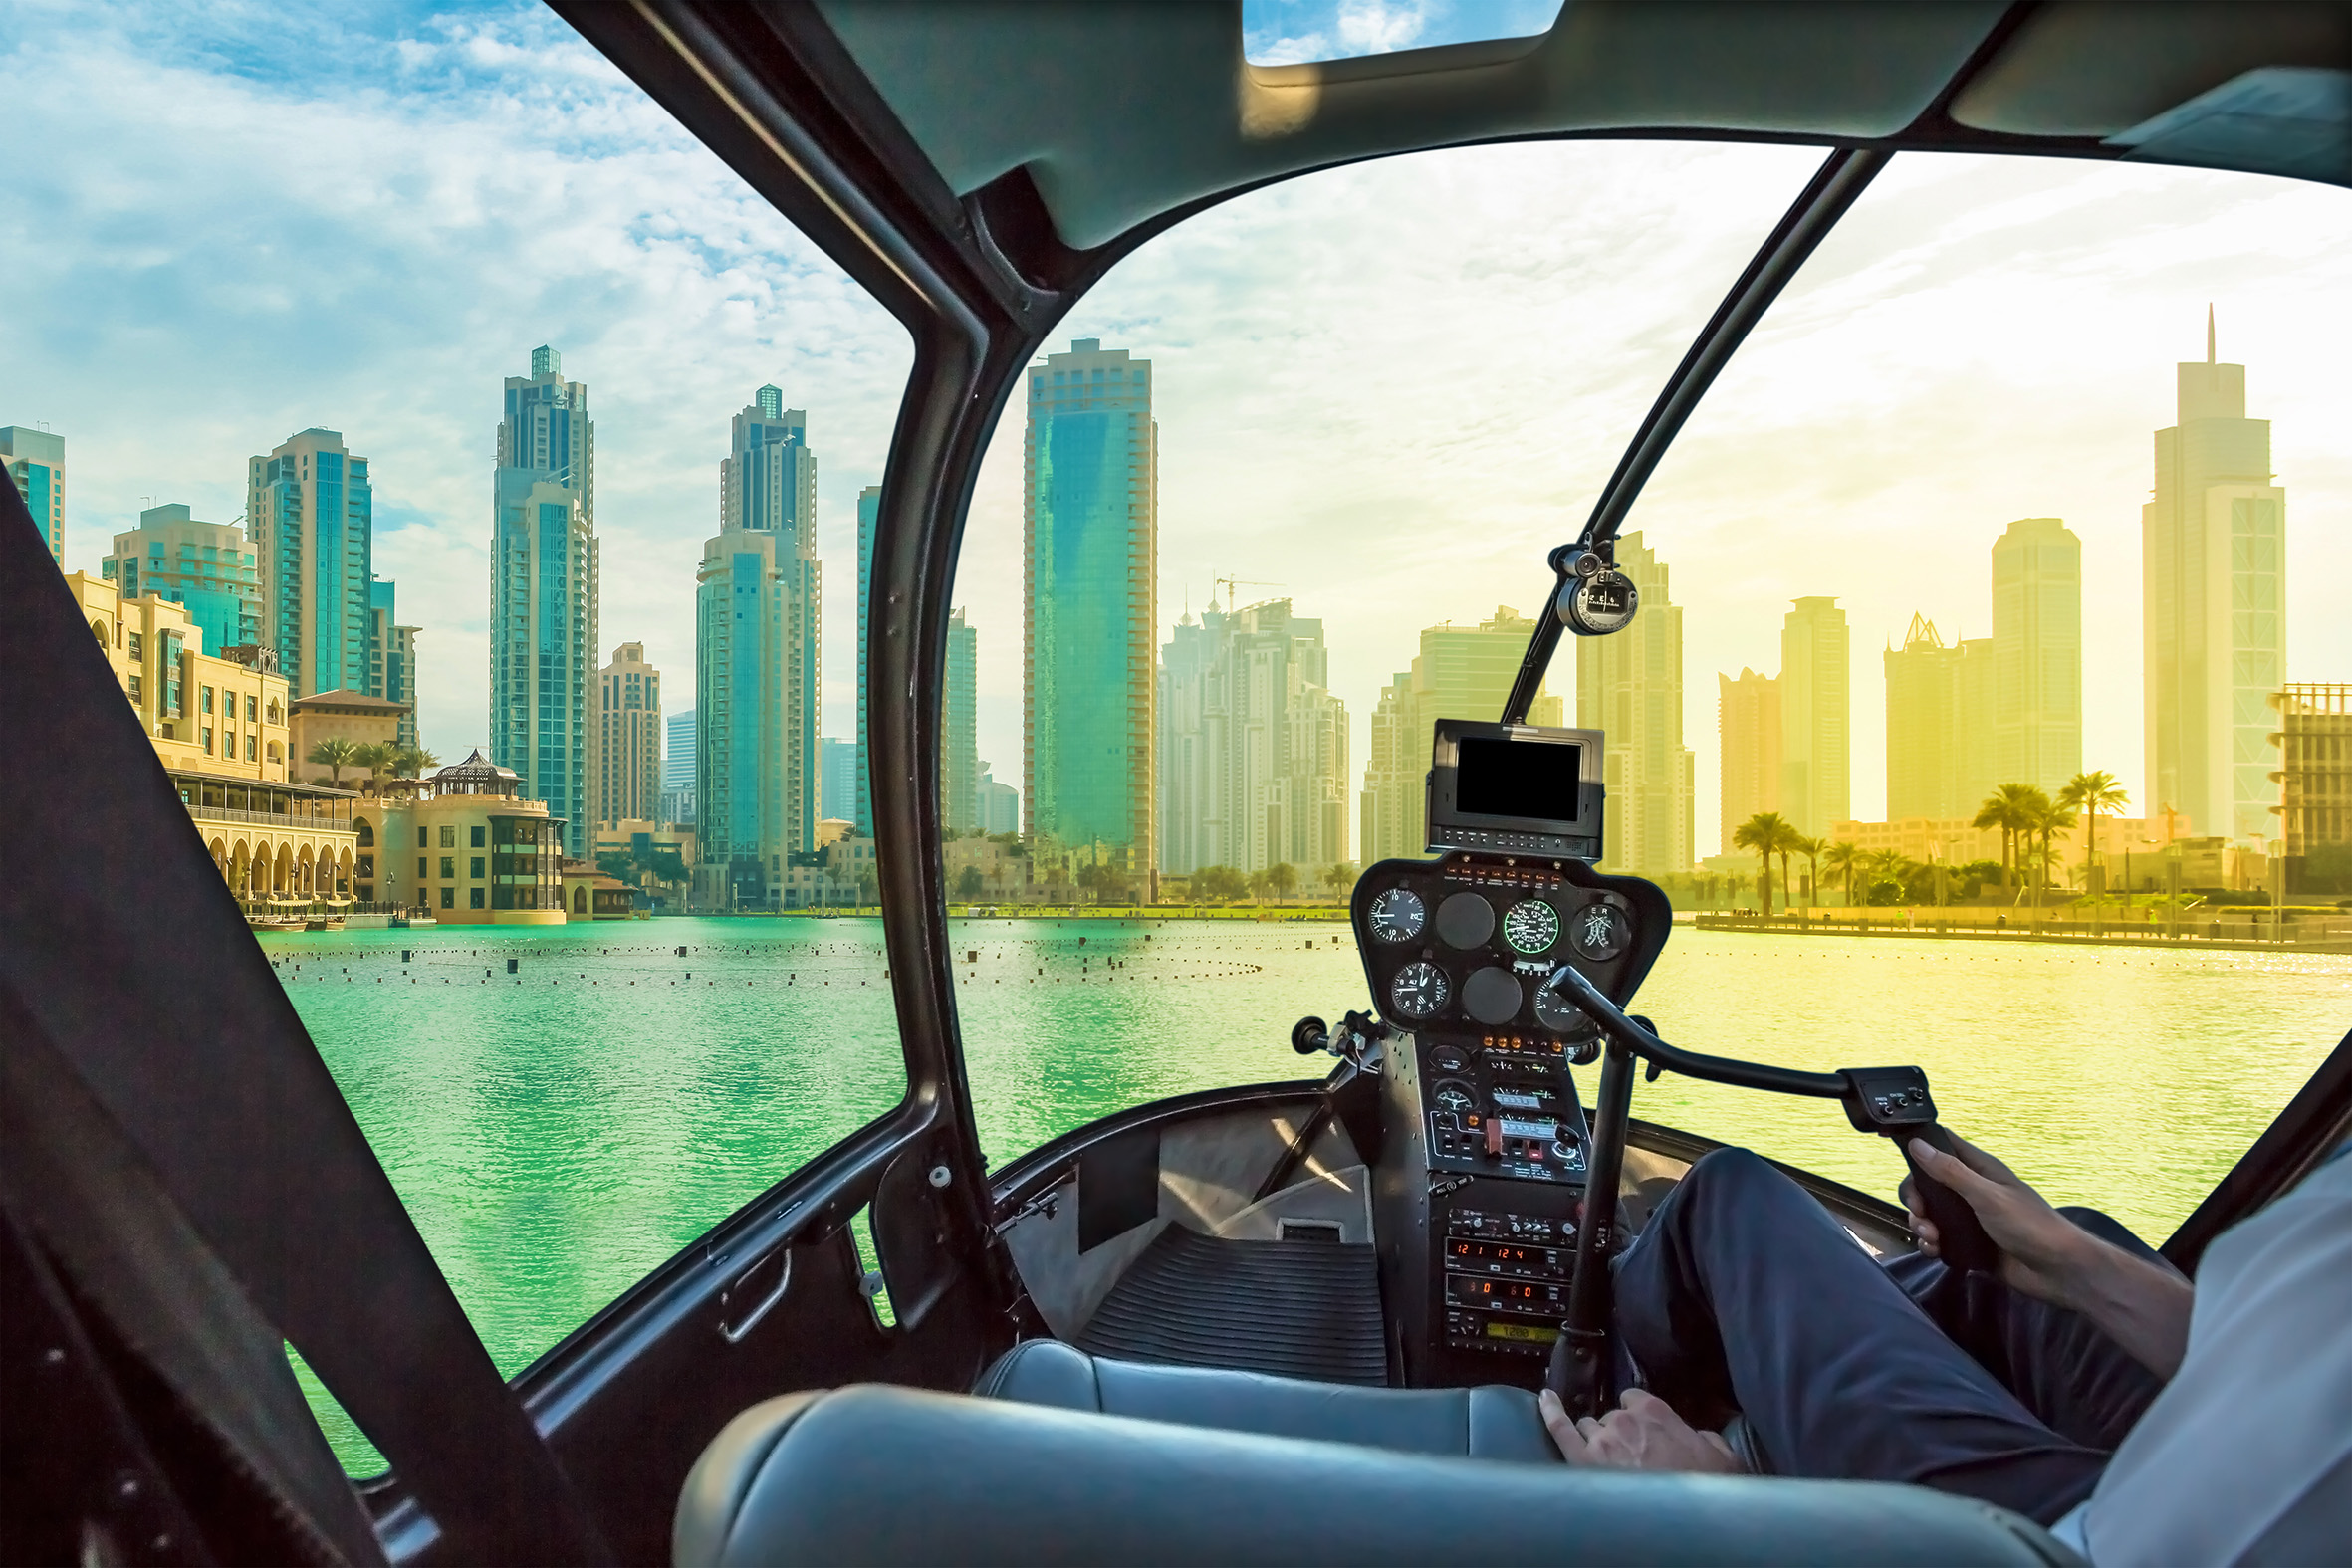 The land of the future in the middle of the desert: the wonders of technology in Dubai